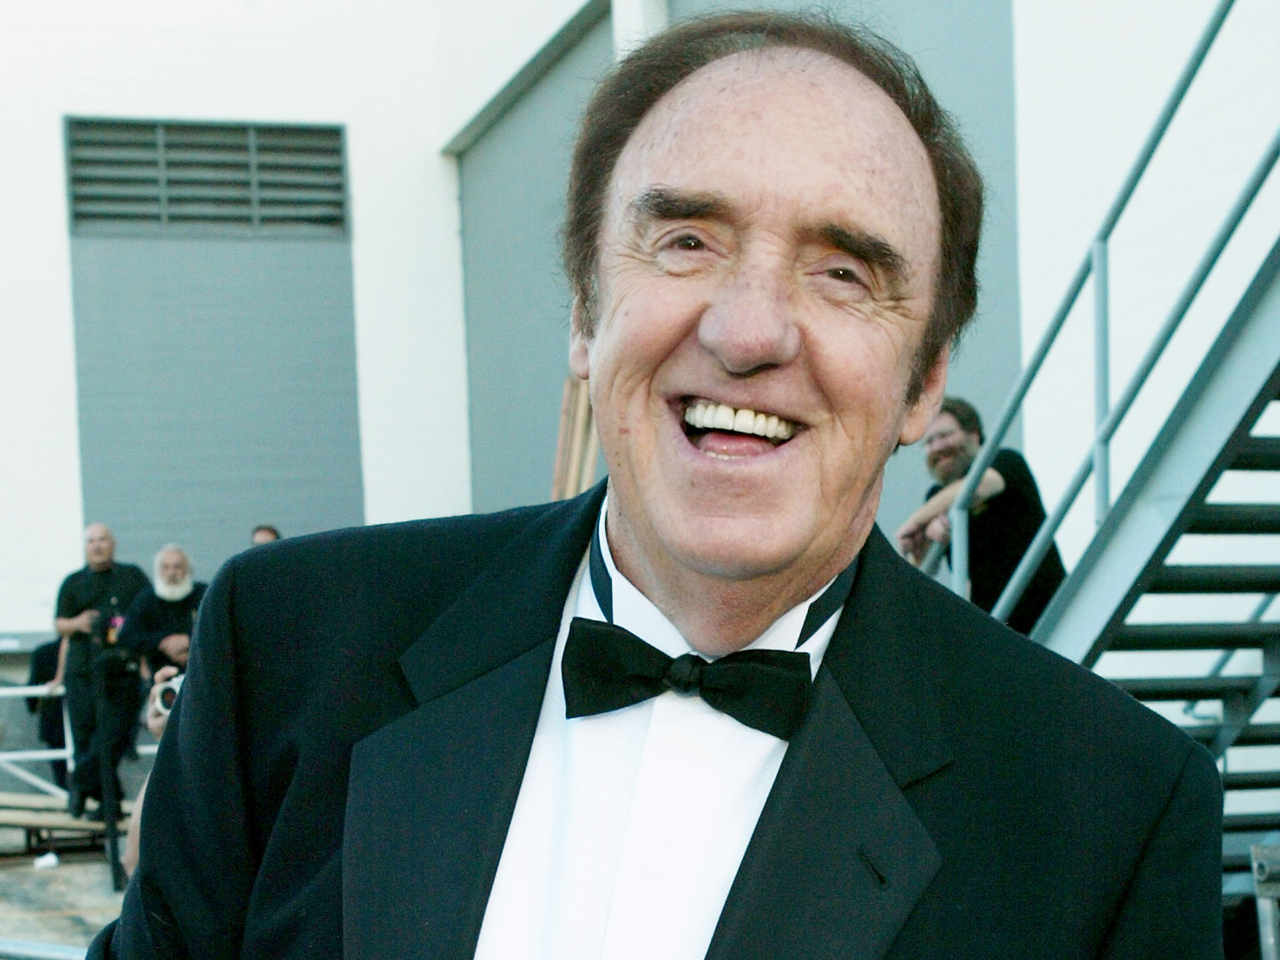 Actor Jim Nabors Marries Male Partner In Seattle Cbs News Later he worked as a business associate with jim. https www cbsnews com news actor jim nabors marries male partner in seattle